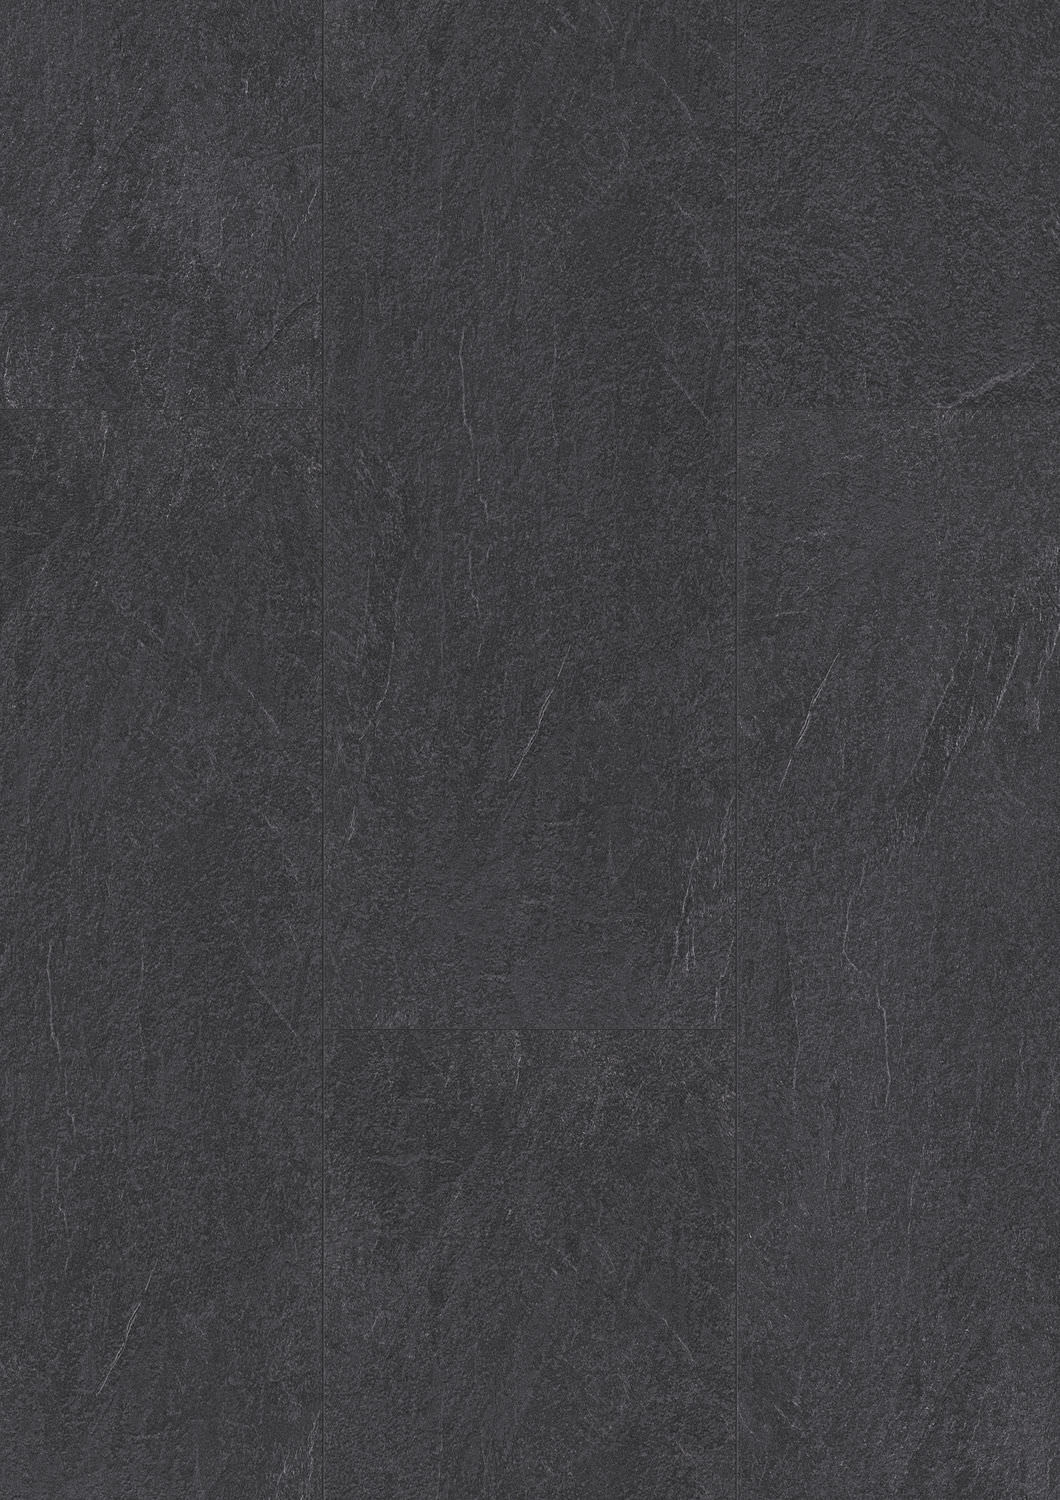 Hdf Laminate Flooring Fit Stone Look Tile Charcoal Slate L0120 01778